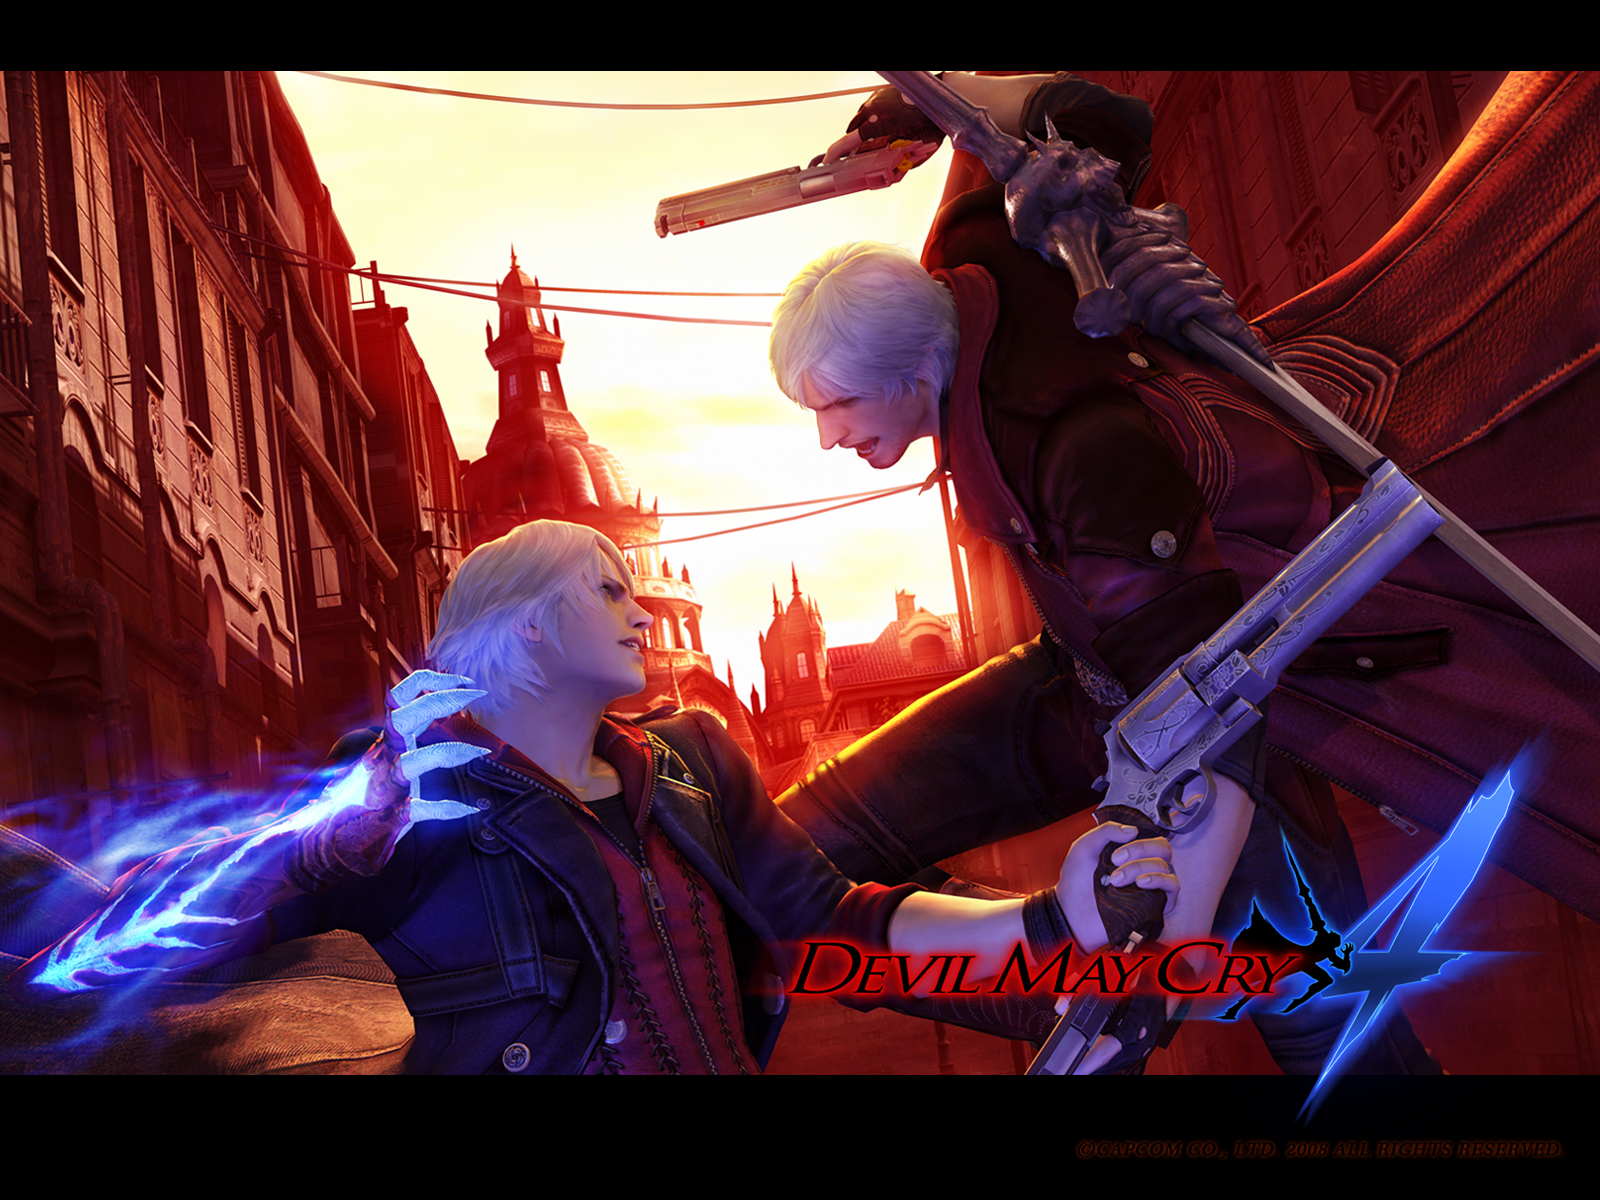 Devil May Cry Fanarts Dmc4wp3full